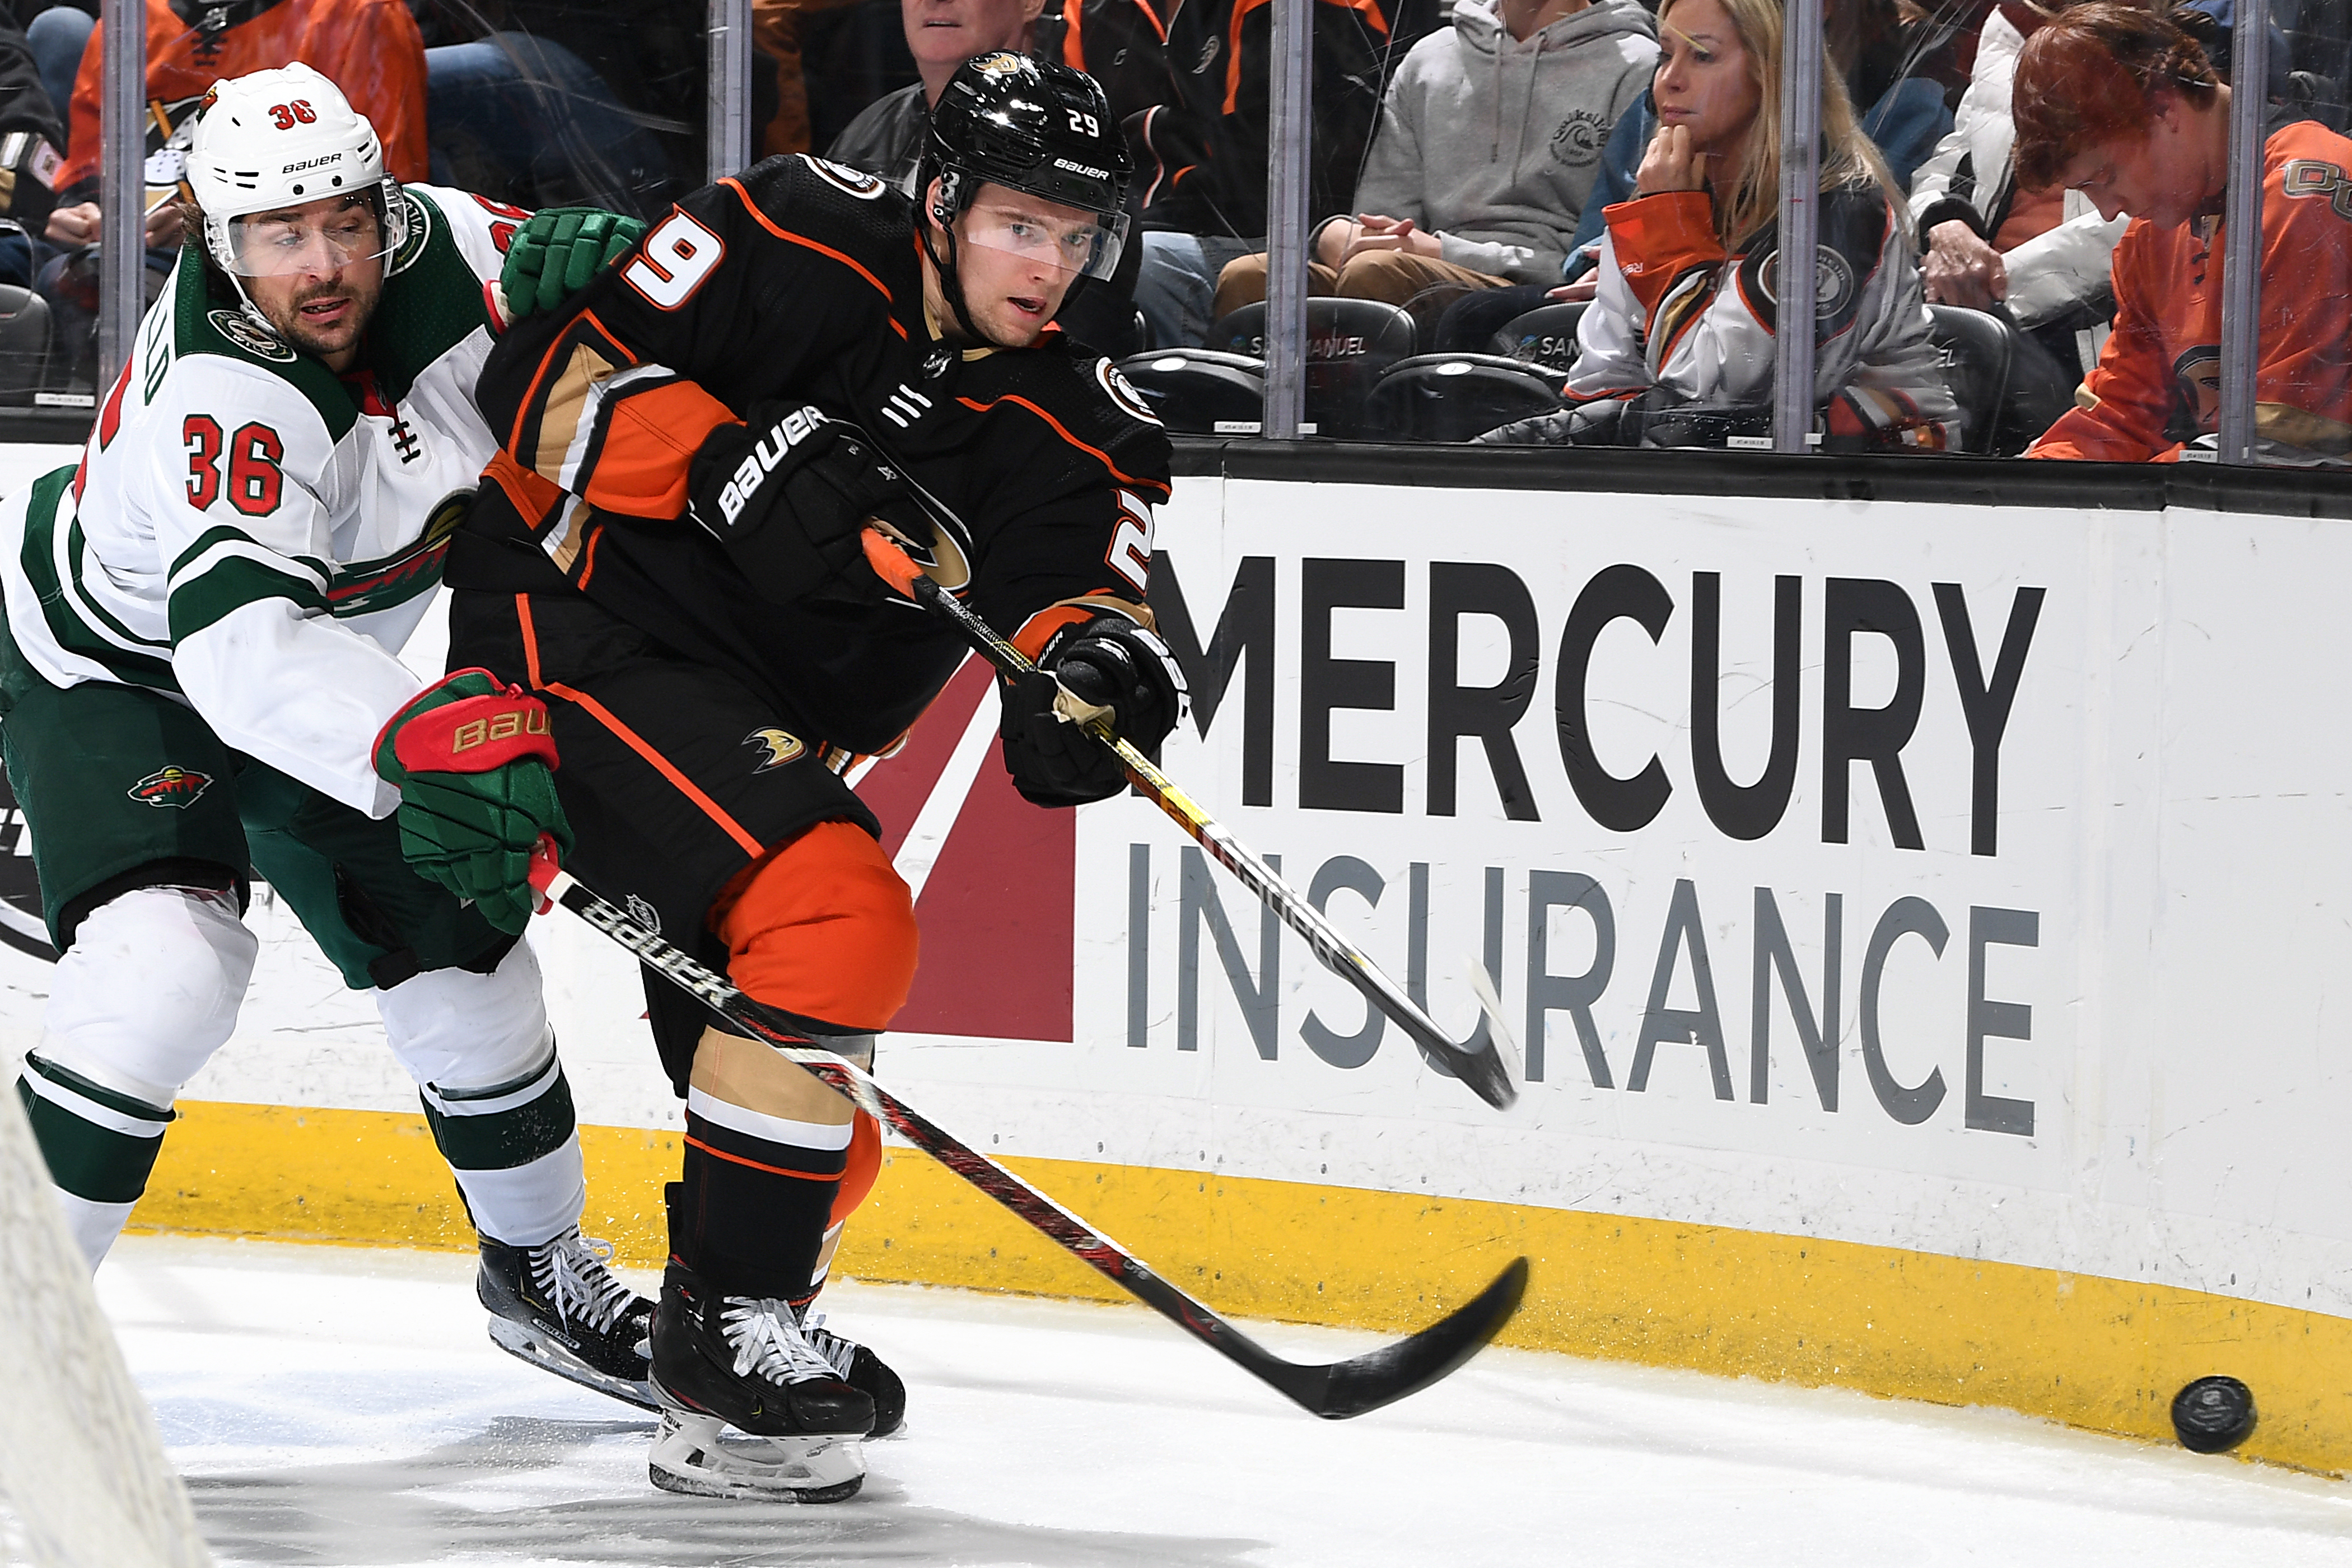 ANAHEIM, CA - MARCH 8: Christian Djoos #29 of the Anaheim Ducks battles for the puck against Mats Zuccarello #36 of the Minnesota Wild during the game at Honda Center on March 8, 2020 in Anaheim, California.